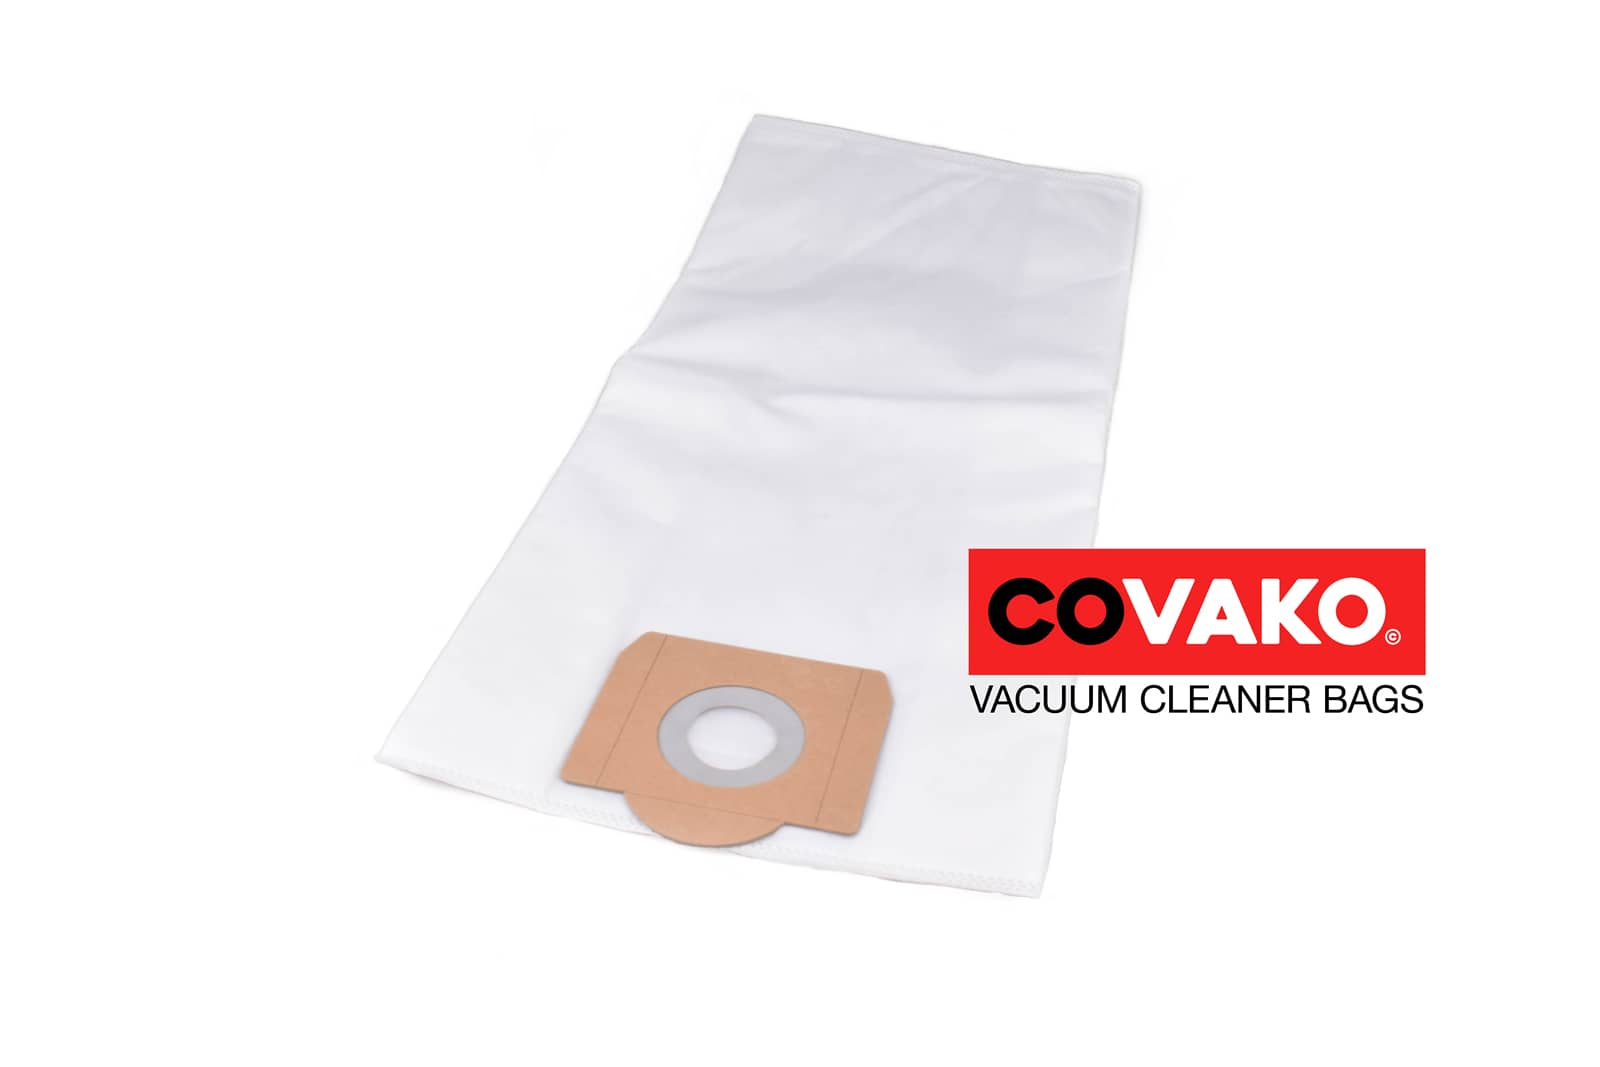 Einhell TC-VC 1930 SA / Synthesis - Einhell vacuum cleaner bags